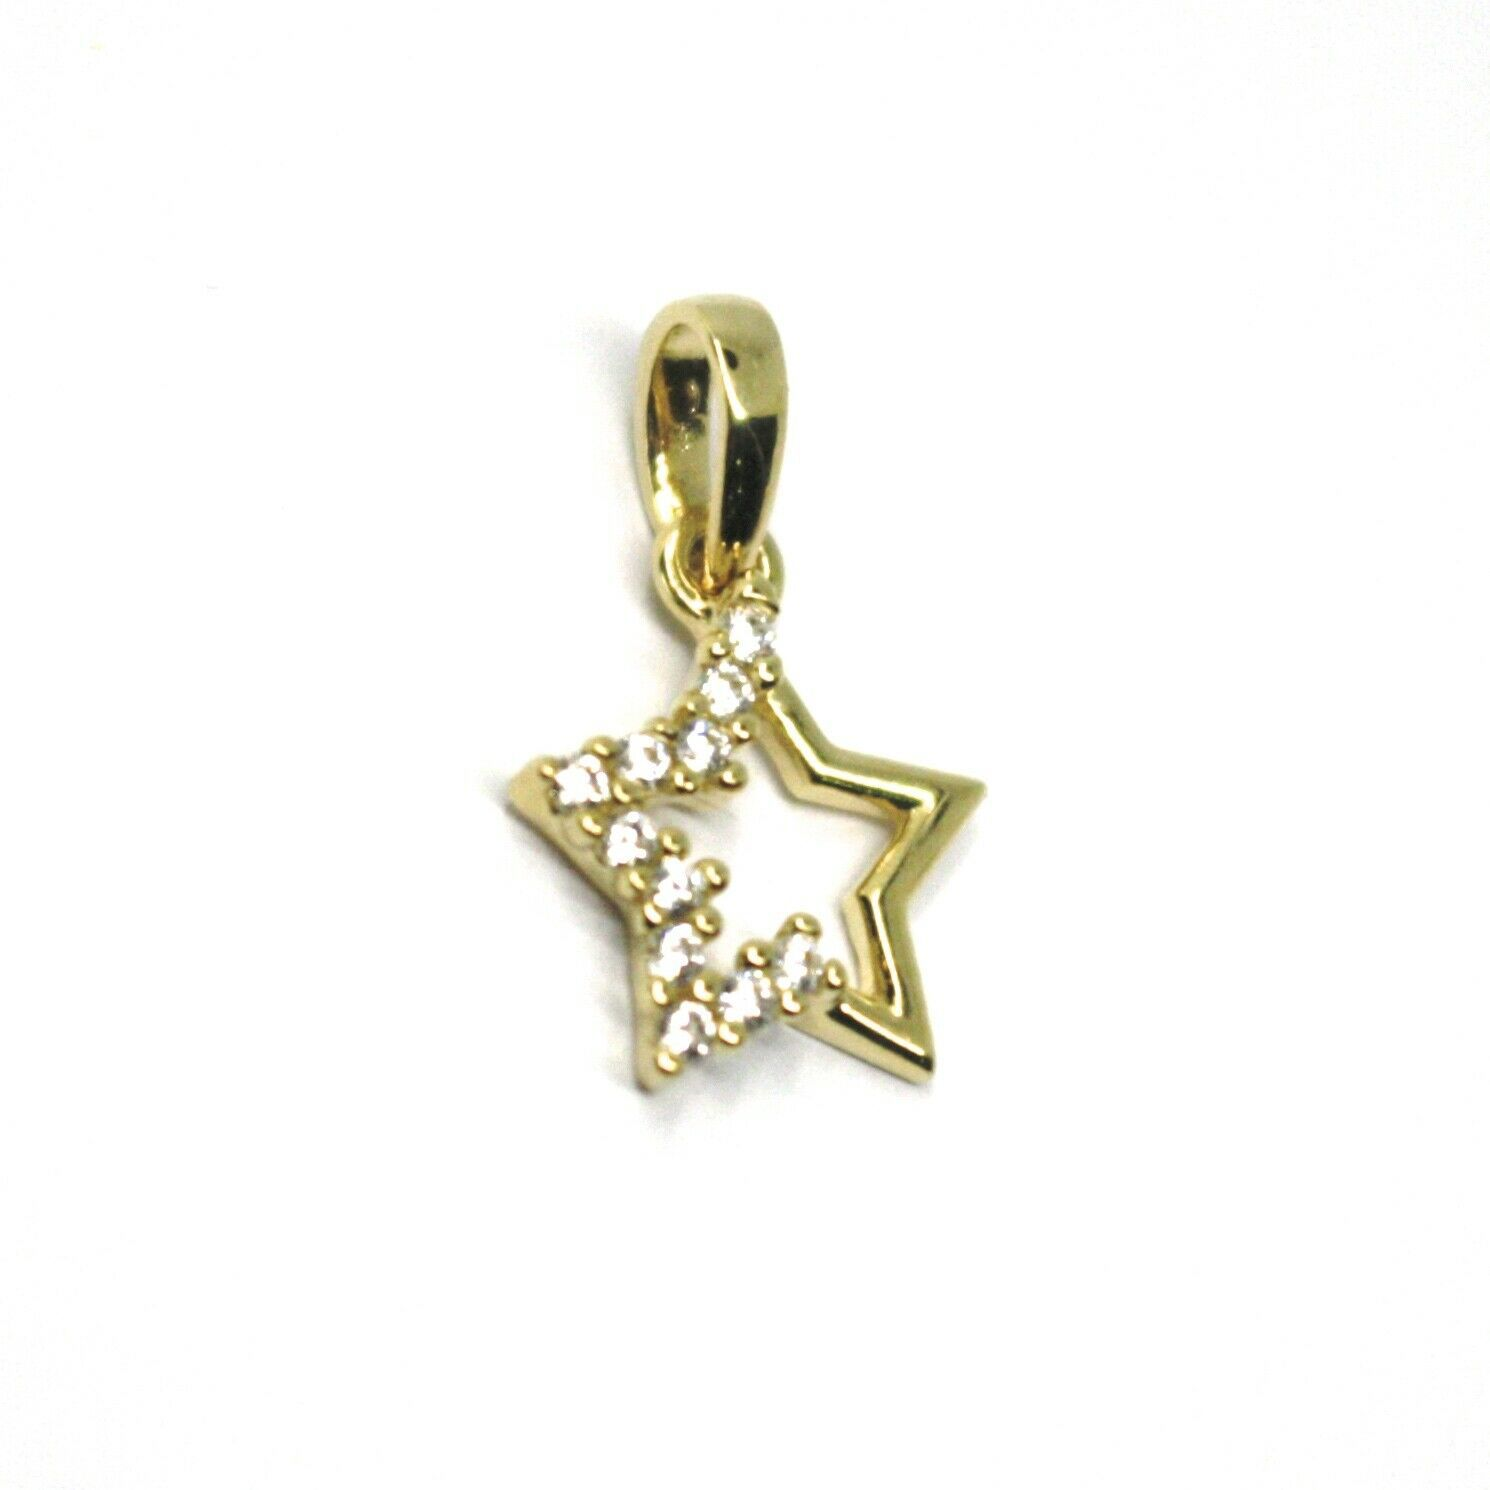 18K YELLOW GOLD MINI STAR PENDANT 10mm DIAMETER, CUBIC ZIRCONIA, SOLID SMOOTH